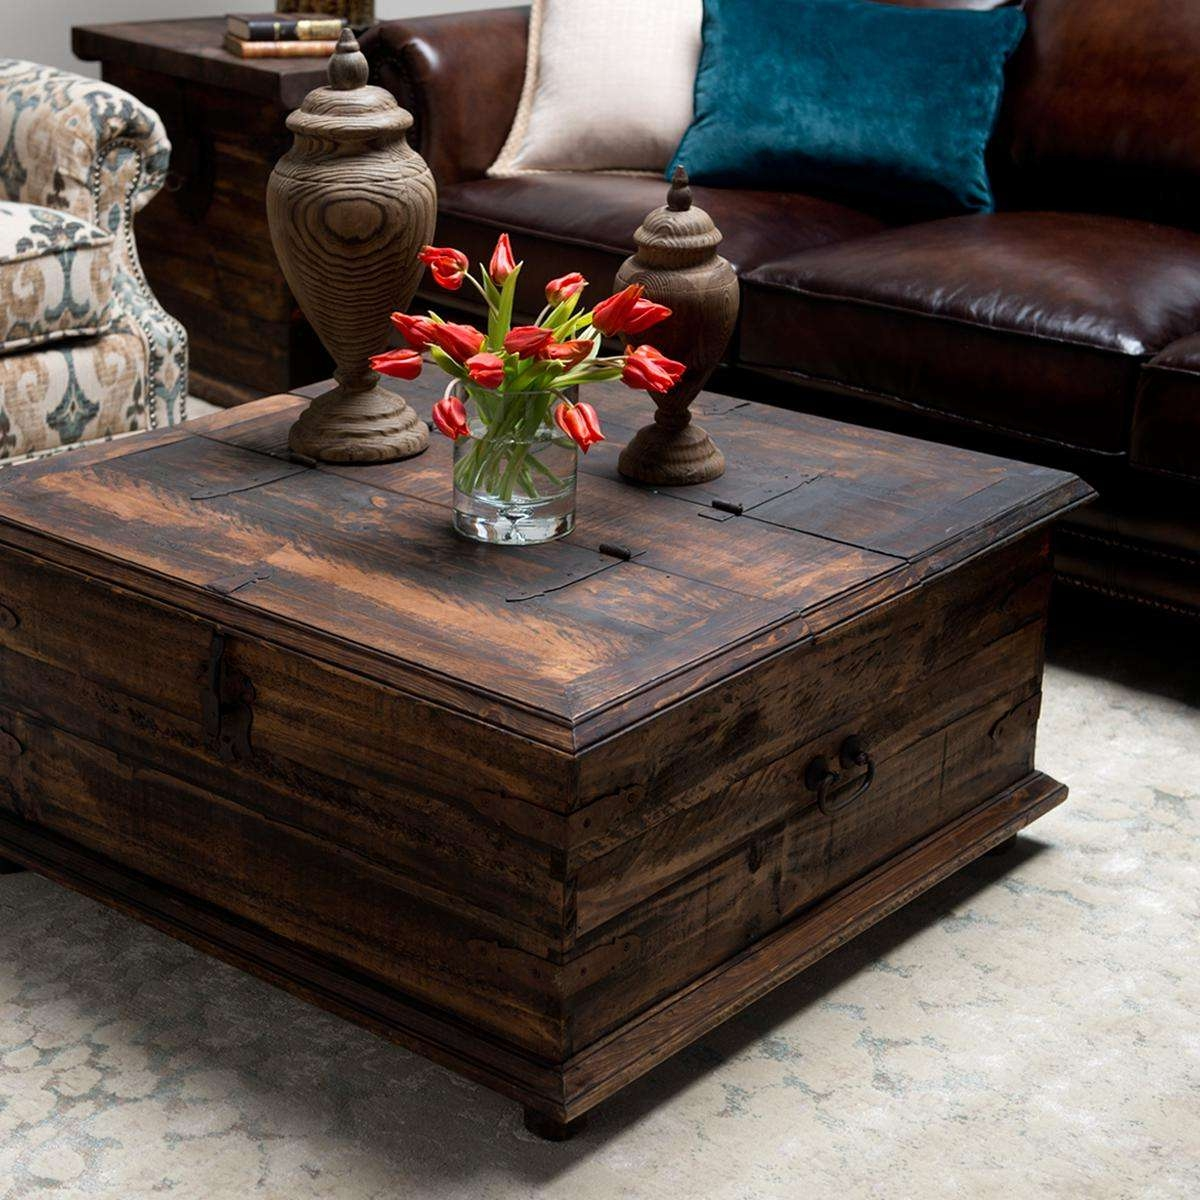 Trunk Coffee Tables Furniture – 3 Functions Of Trunk Coffee Table With Regard To Most Up To Date Storage Trunk Coffee Tables (View 6 of 20)